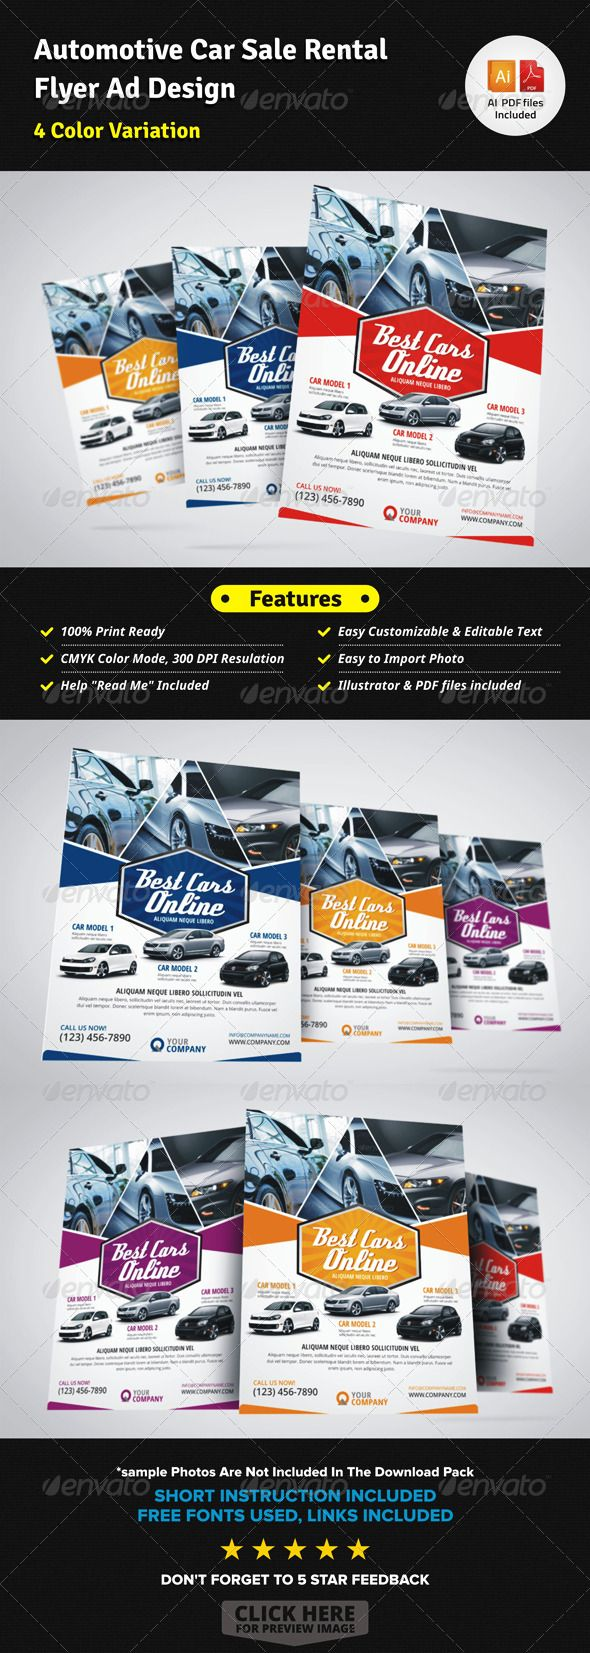 8 best Flyers images on Pinterest | Flyer design, Banner design and Cars